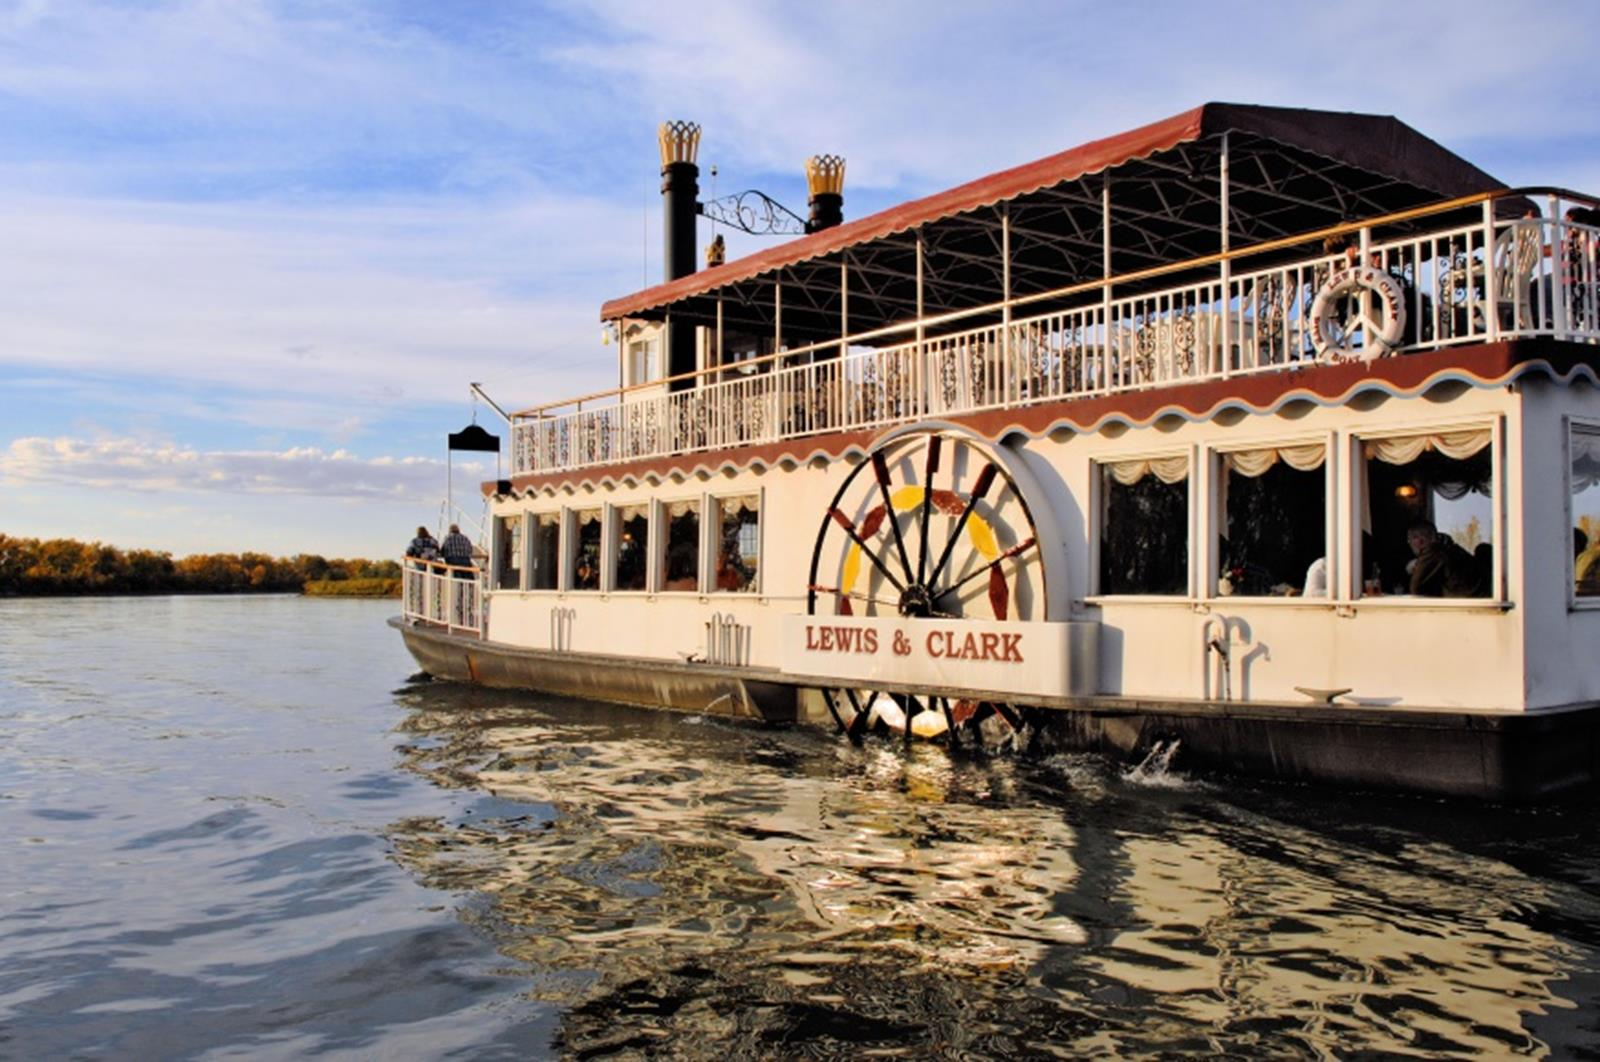 Lewis & Clark Riverboat Cruise, floating along the Missouri River. Credit: Lewis & Clark Riverboat